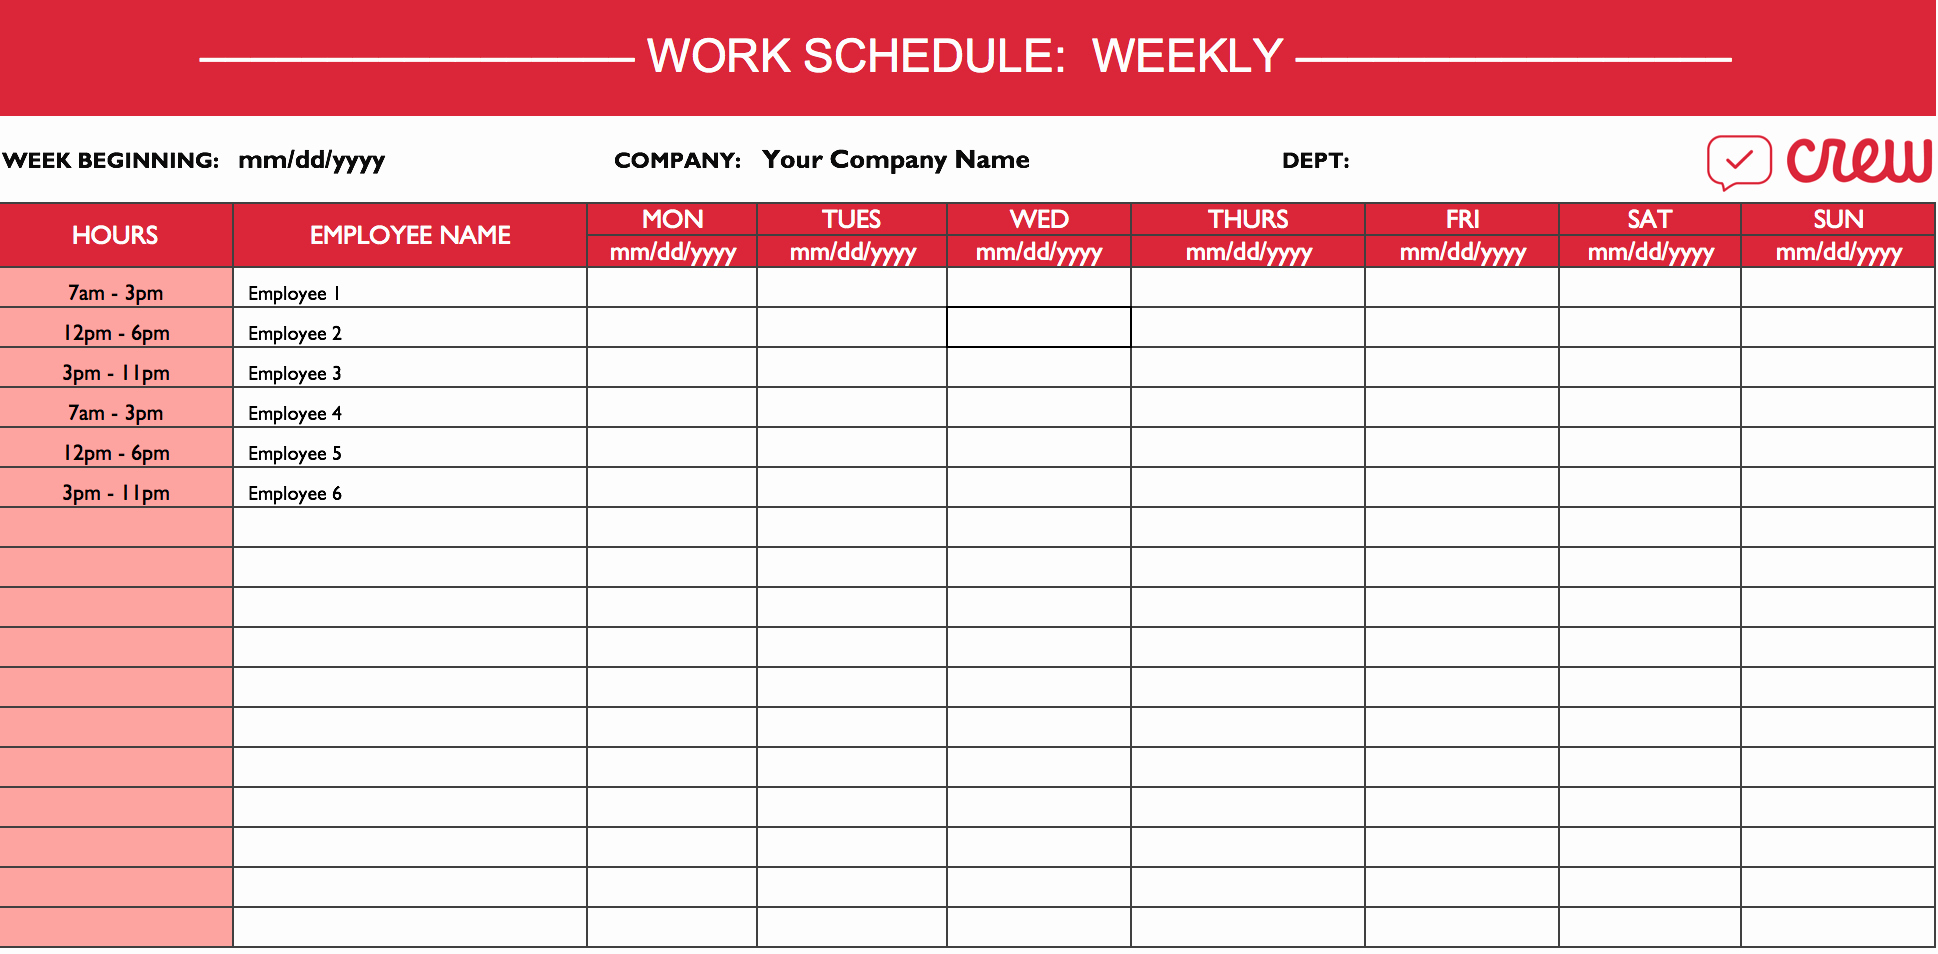 Free Printable Weekly Schedule Template Fresh Weekly Work Schedule Template I Crew